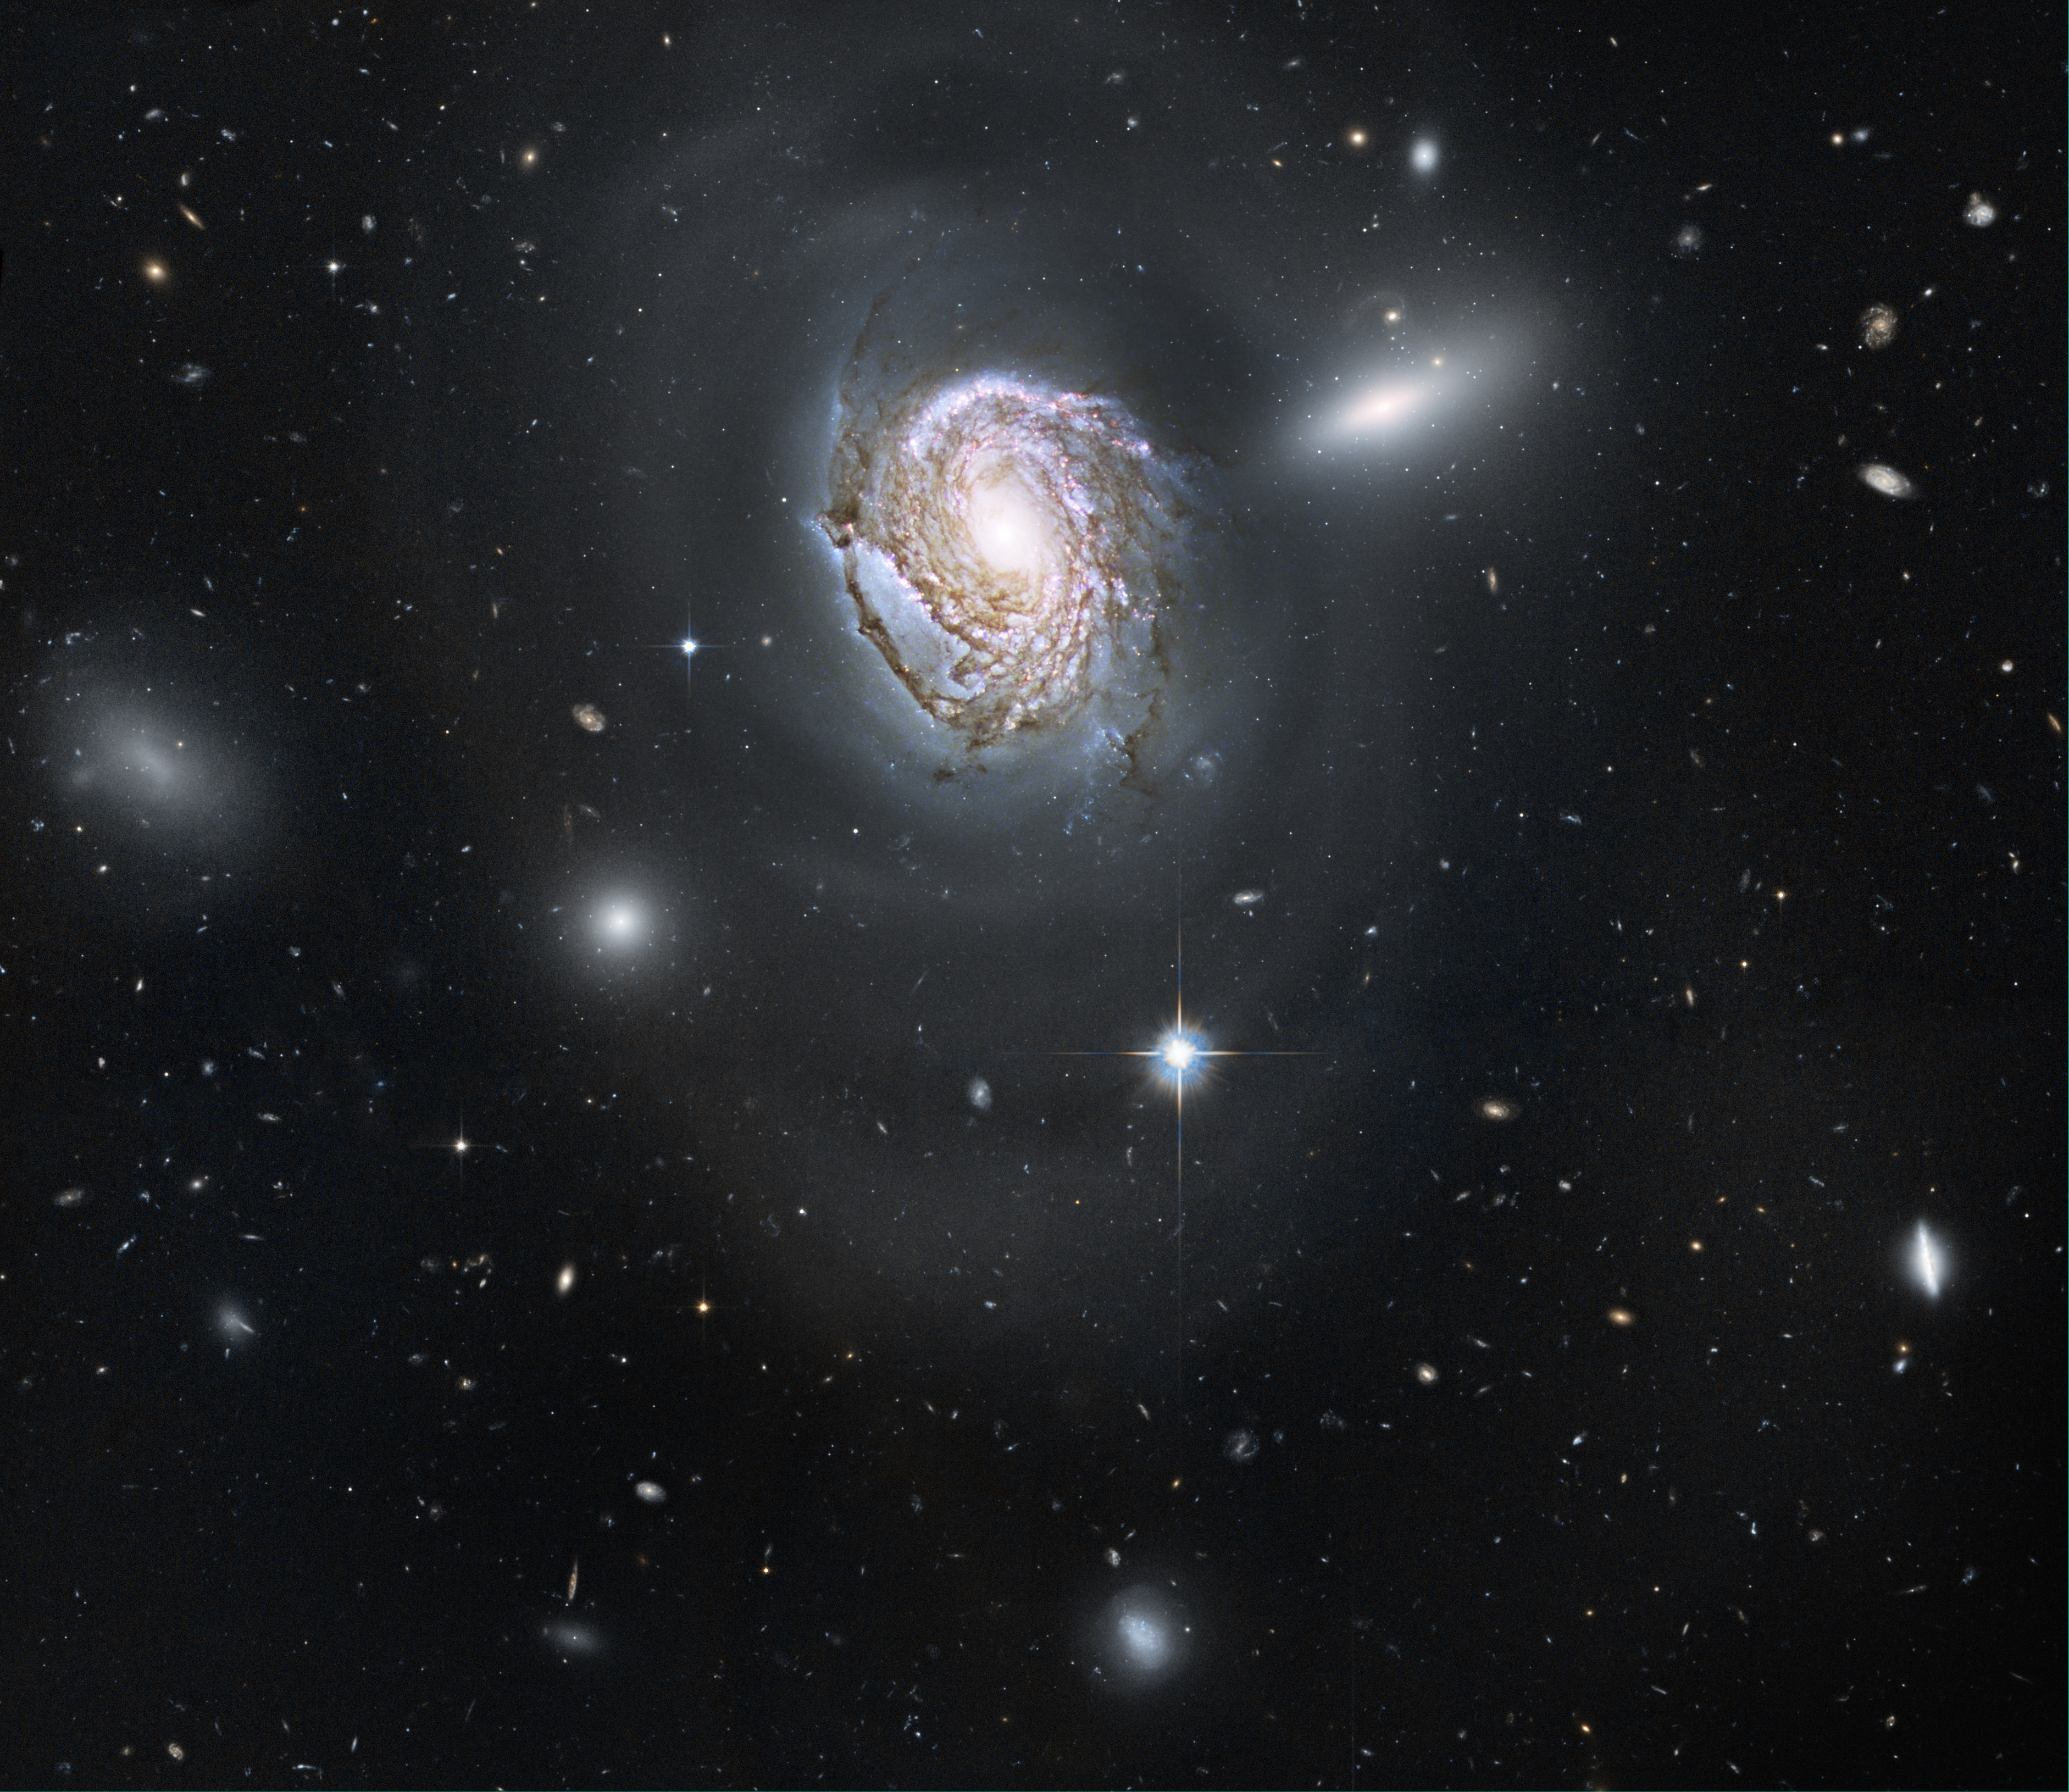 NGC 4911: Spiral Diving into a Dense Cluster